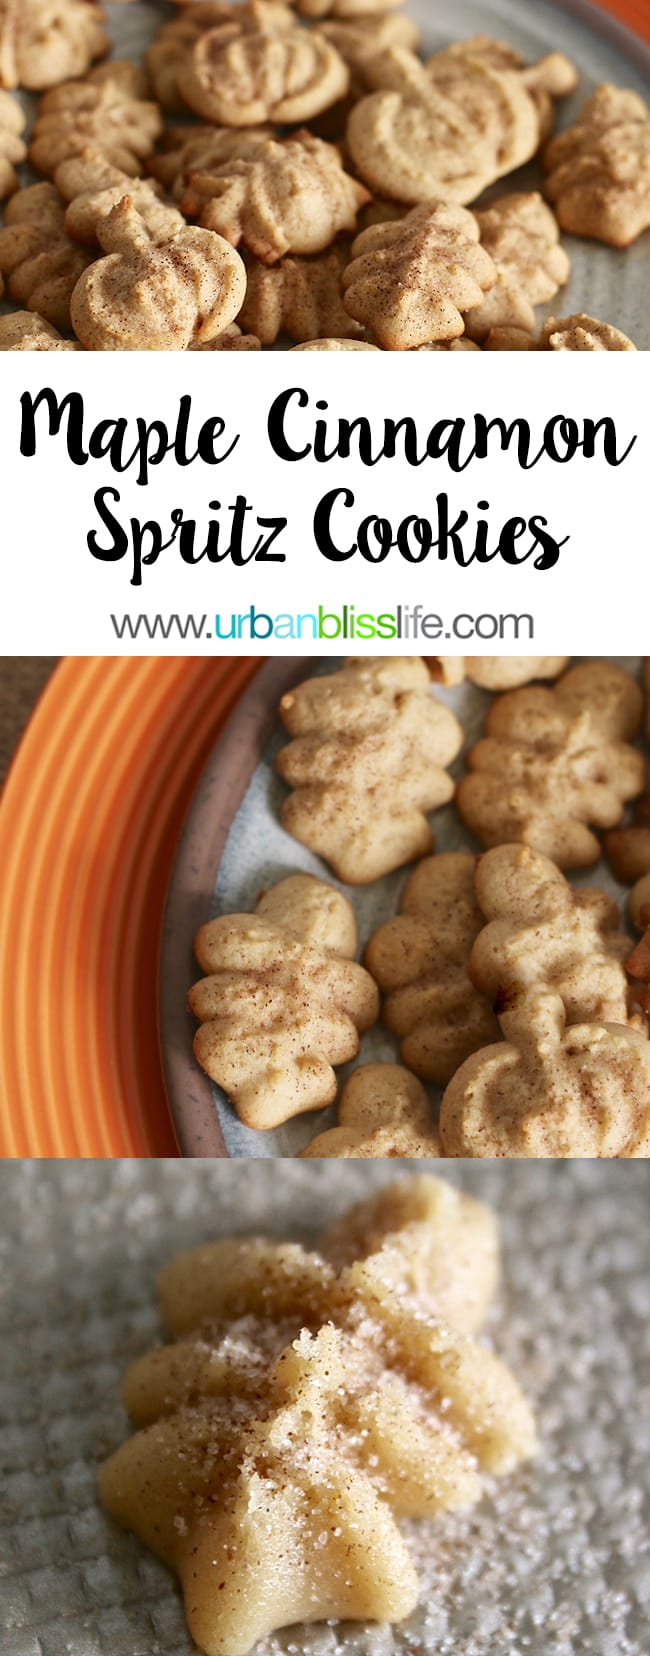 Maple Cinnamon Spritz Cookies recipe on UrbanBlissLife.com